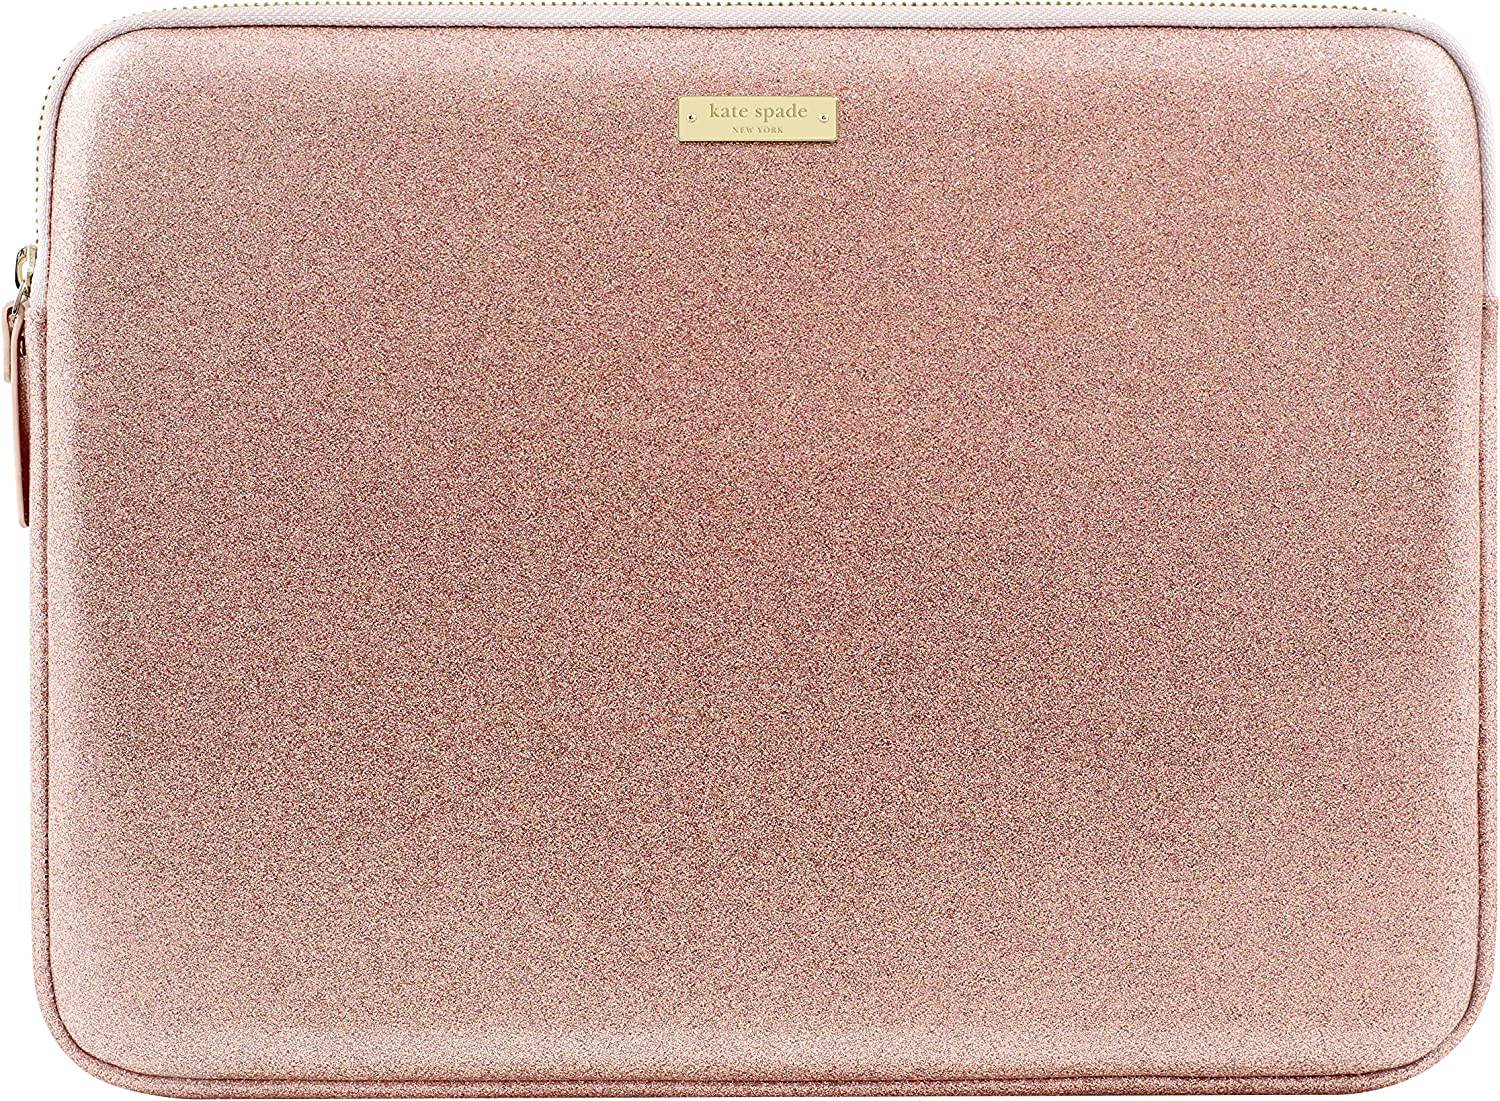 "kate spade new york Sleeve for 13"" MacBook, 13"" Laptop - Rose Gold Glitter"